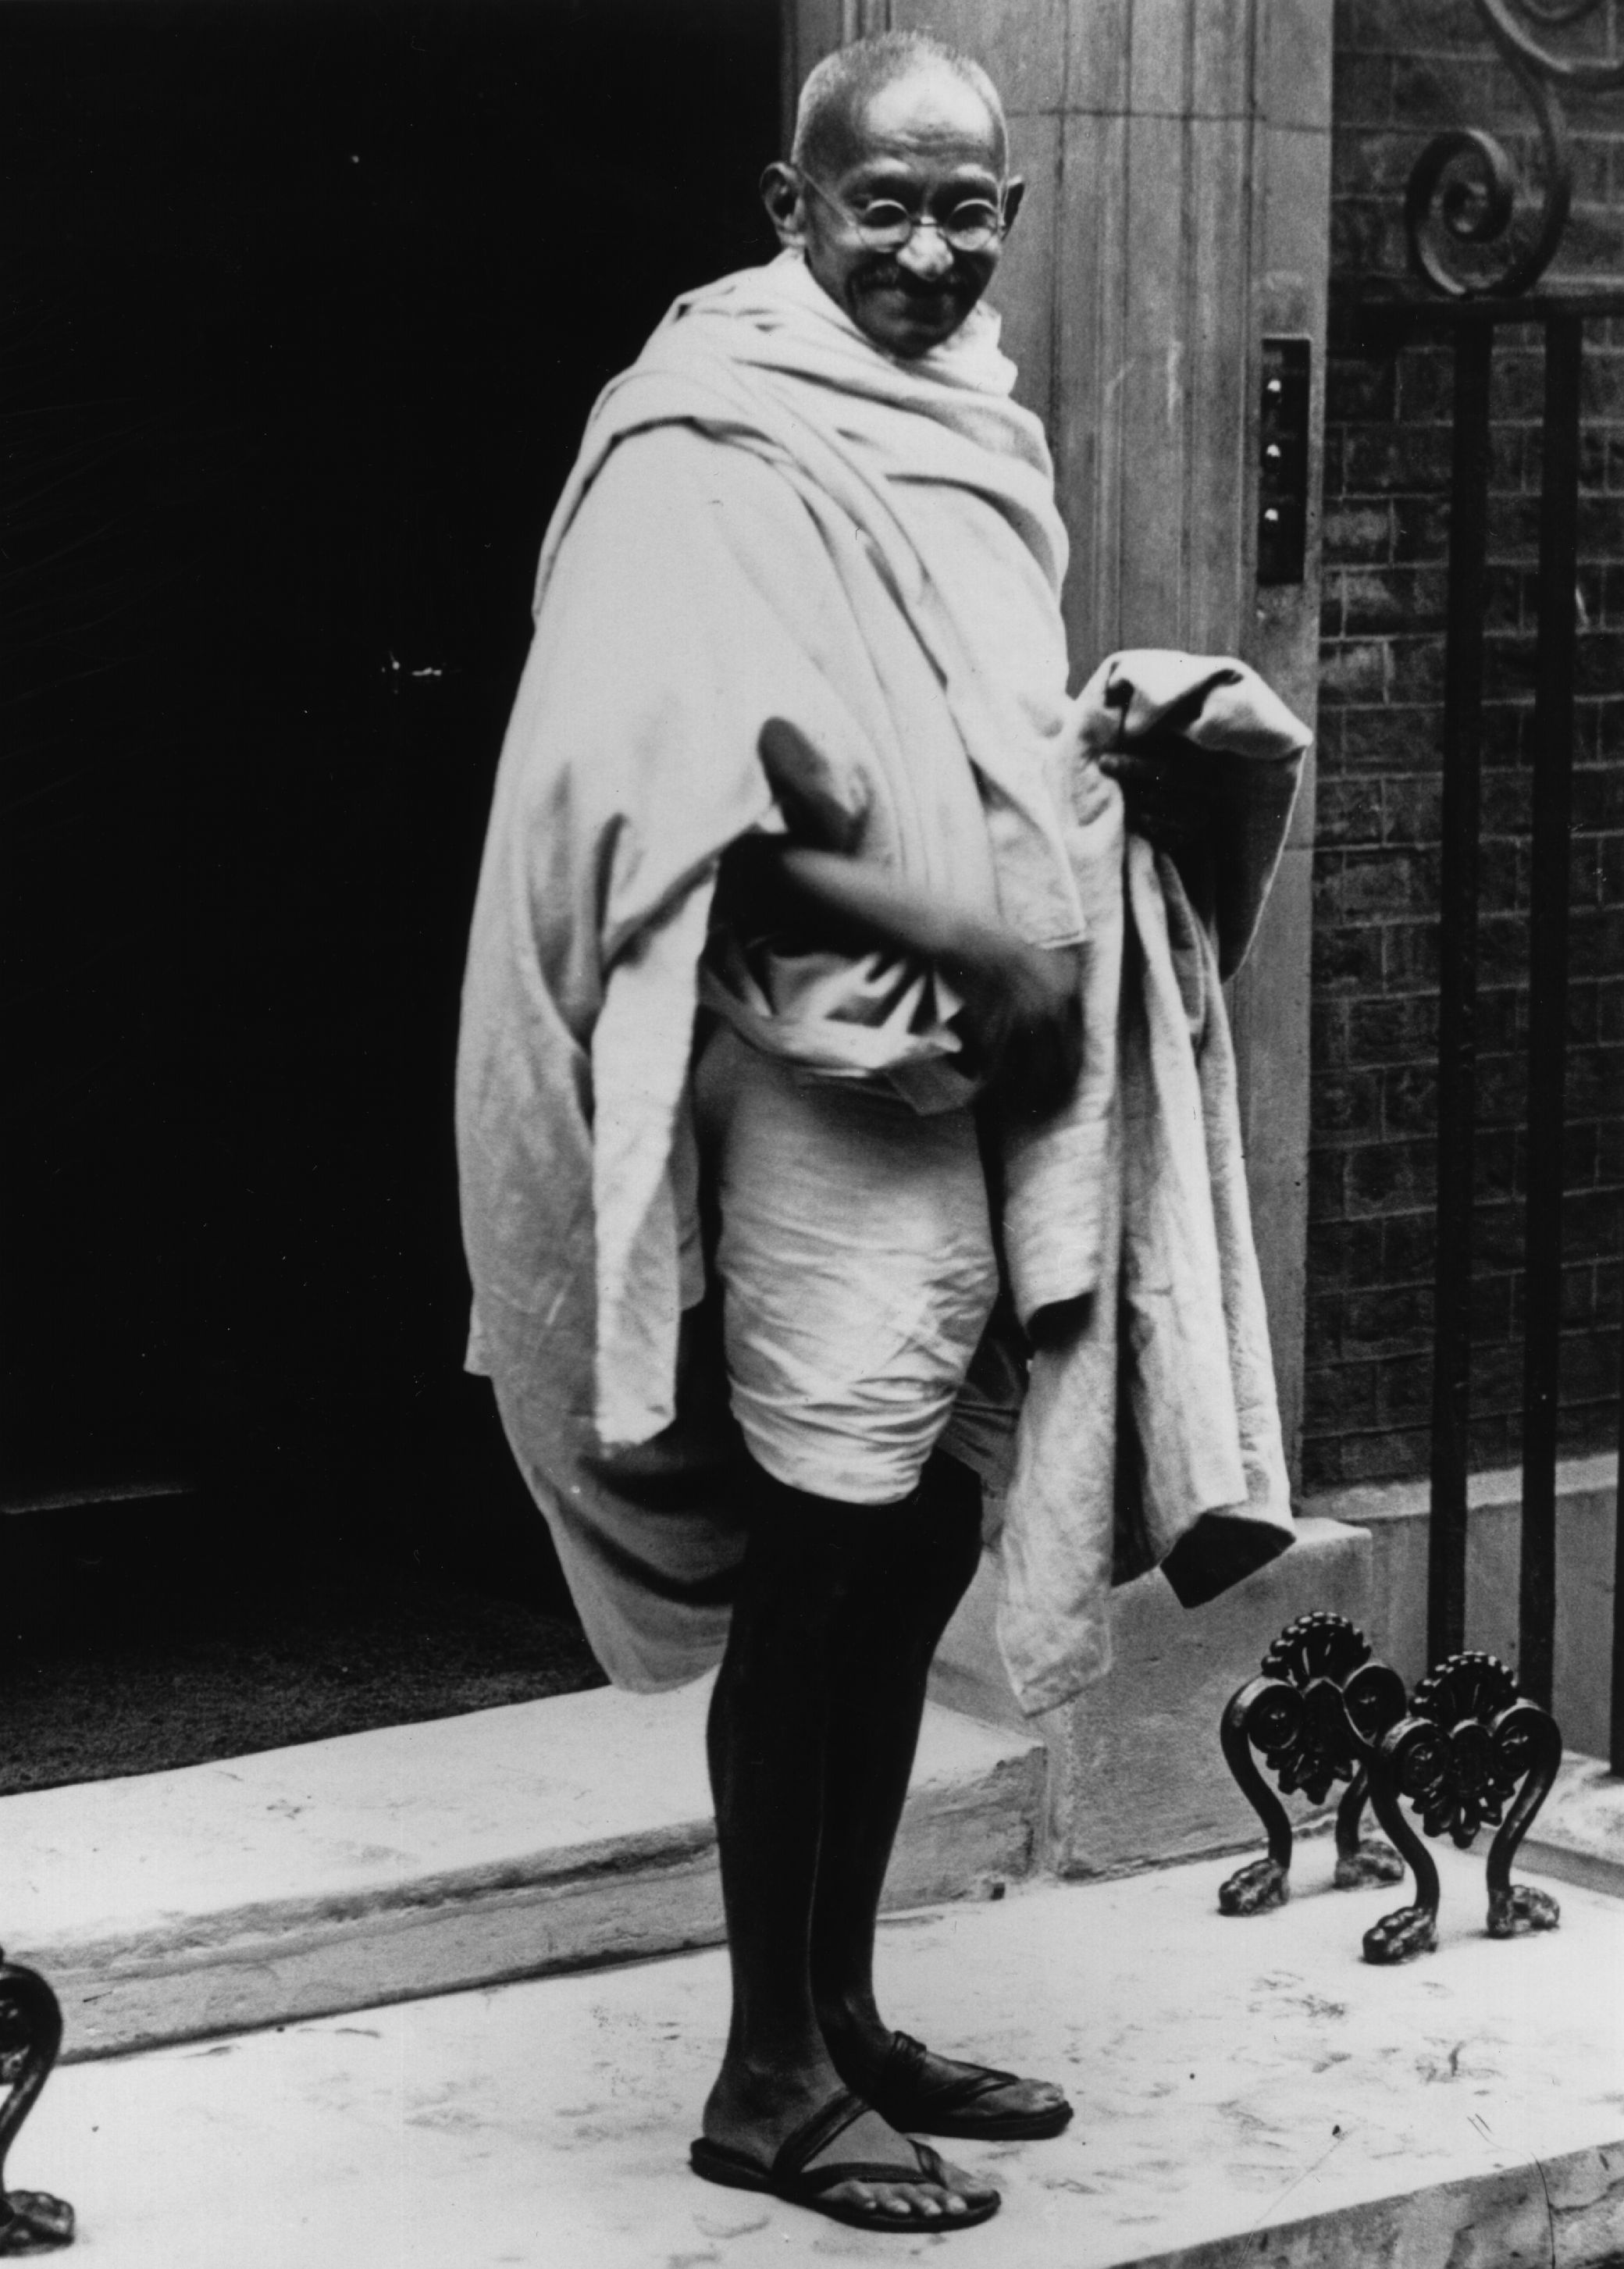 3rd November 1931: Mahatma Gandhi (Mohandas Karamchand Gandhi, 1869 - 1948) arriving at No 10 Downing Street, London, for a conference with Prime Minister Ramsay Macdonald. (Photo by J. Gaiger/Topical Press Agency/Getty Images)